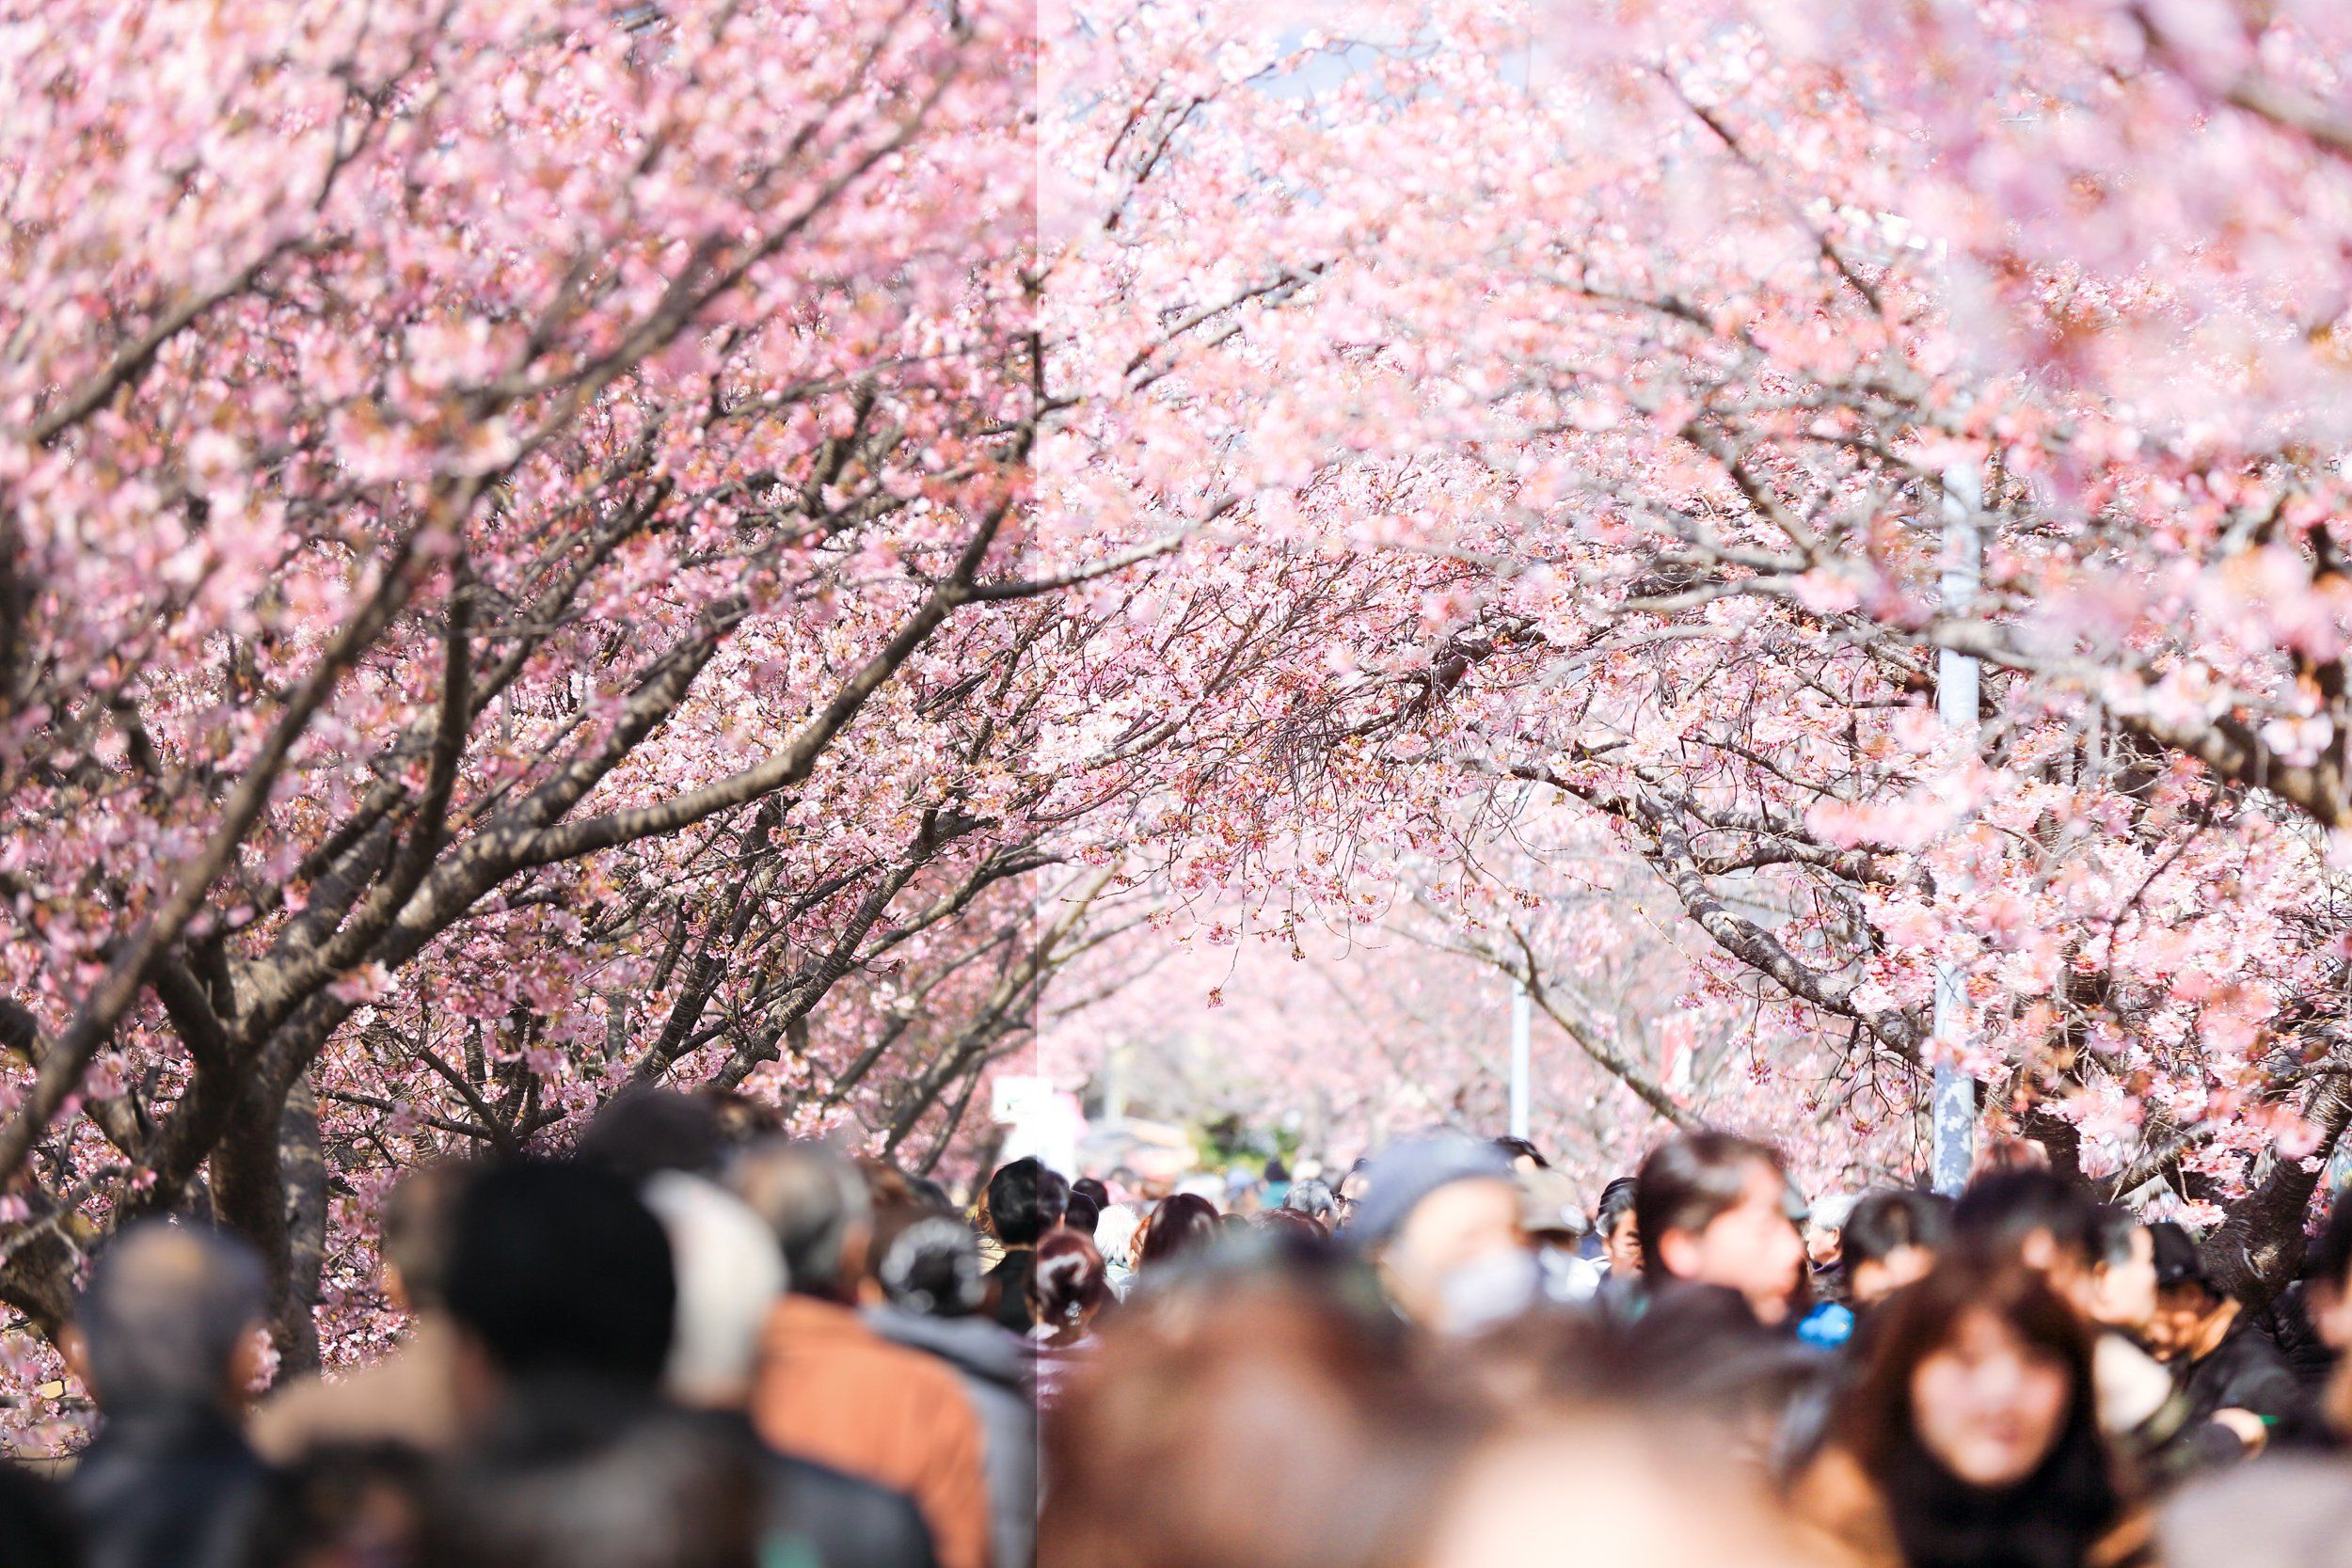 S Series Vscocam Presets Acr Actions Cherry Blossom Symbolism Cherry Blossom Spring Pictures